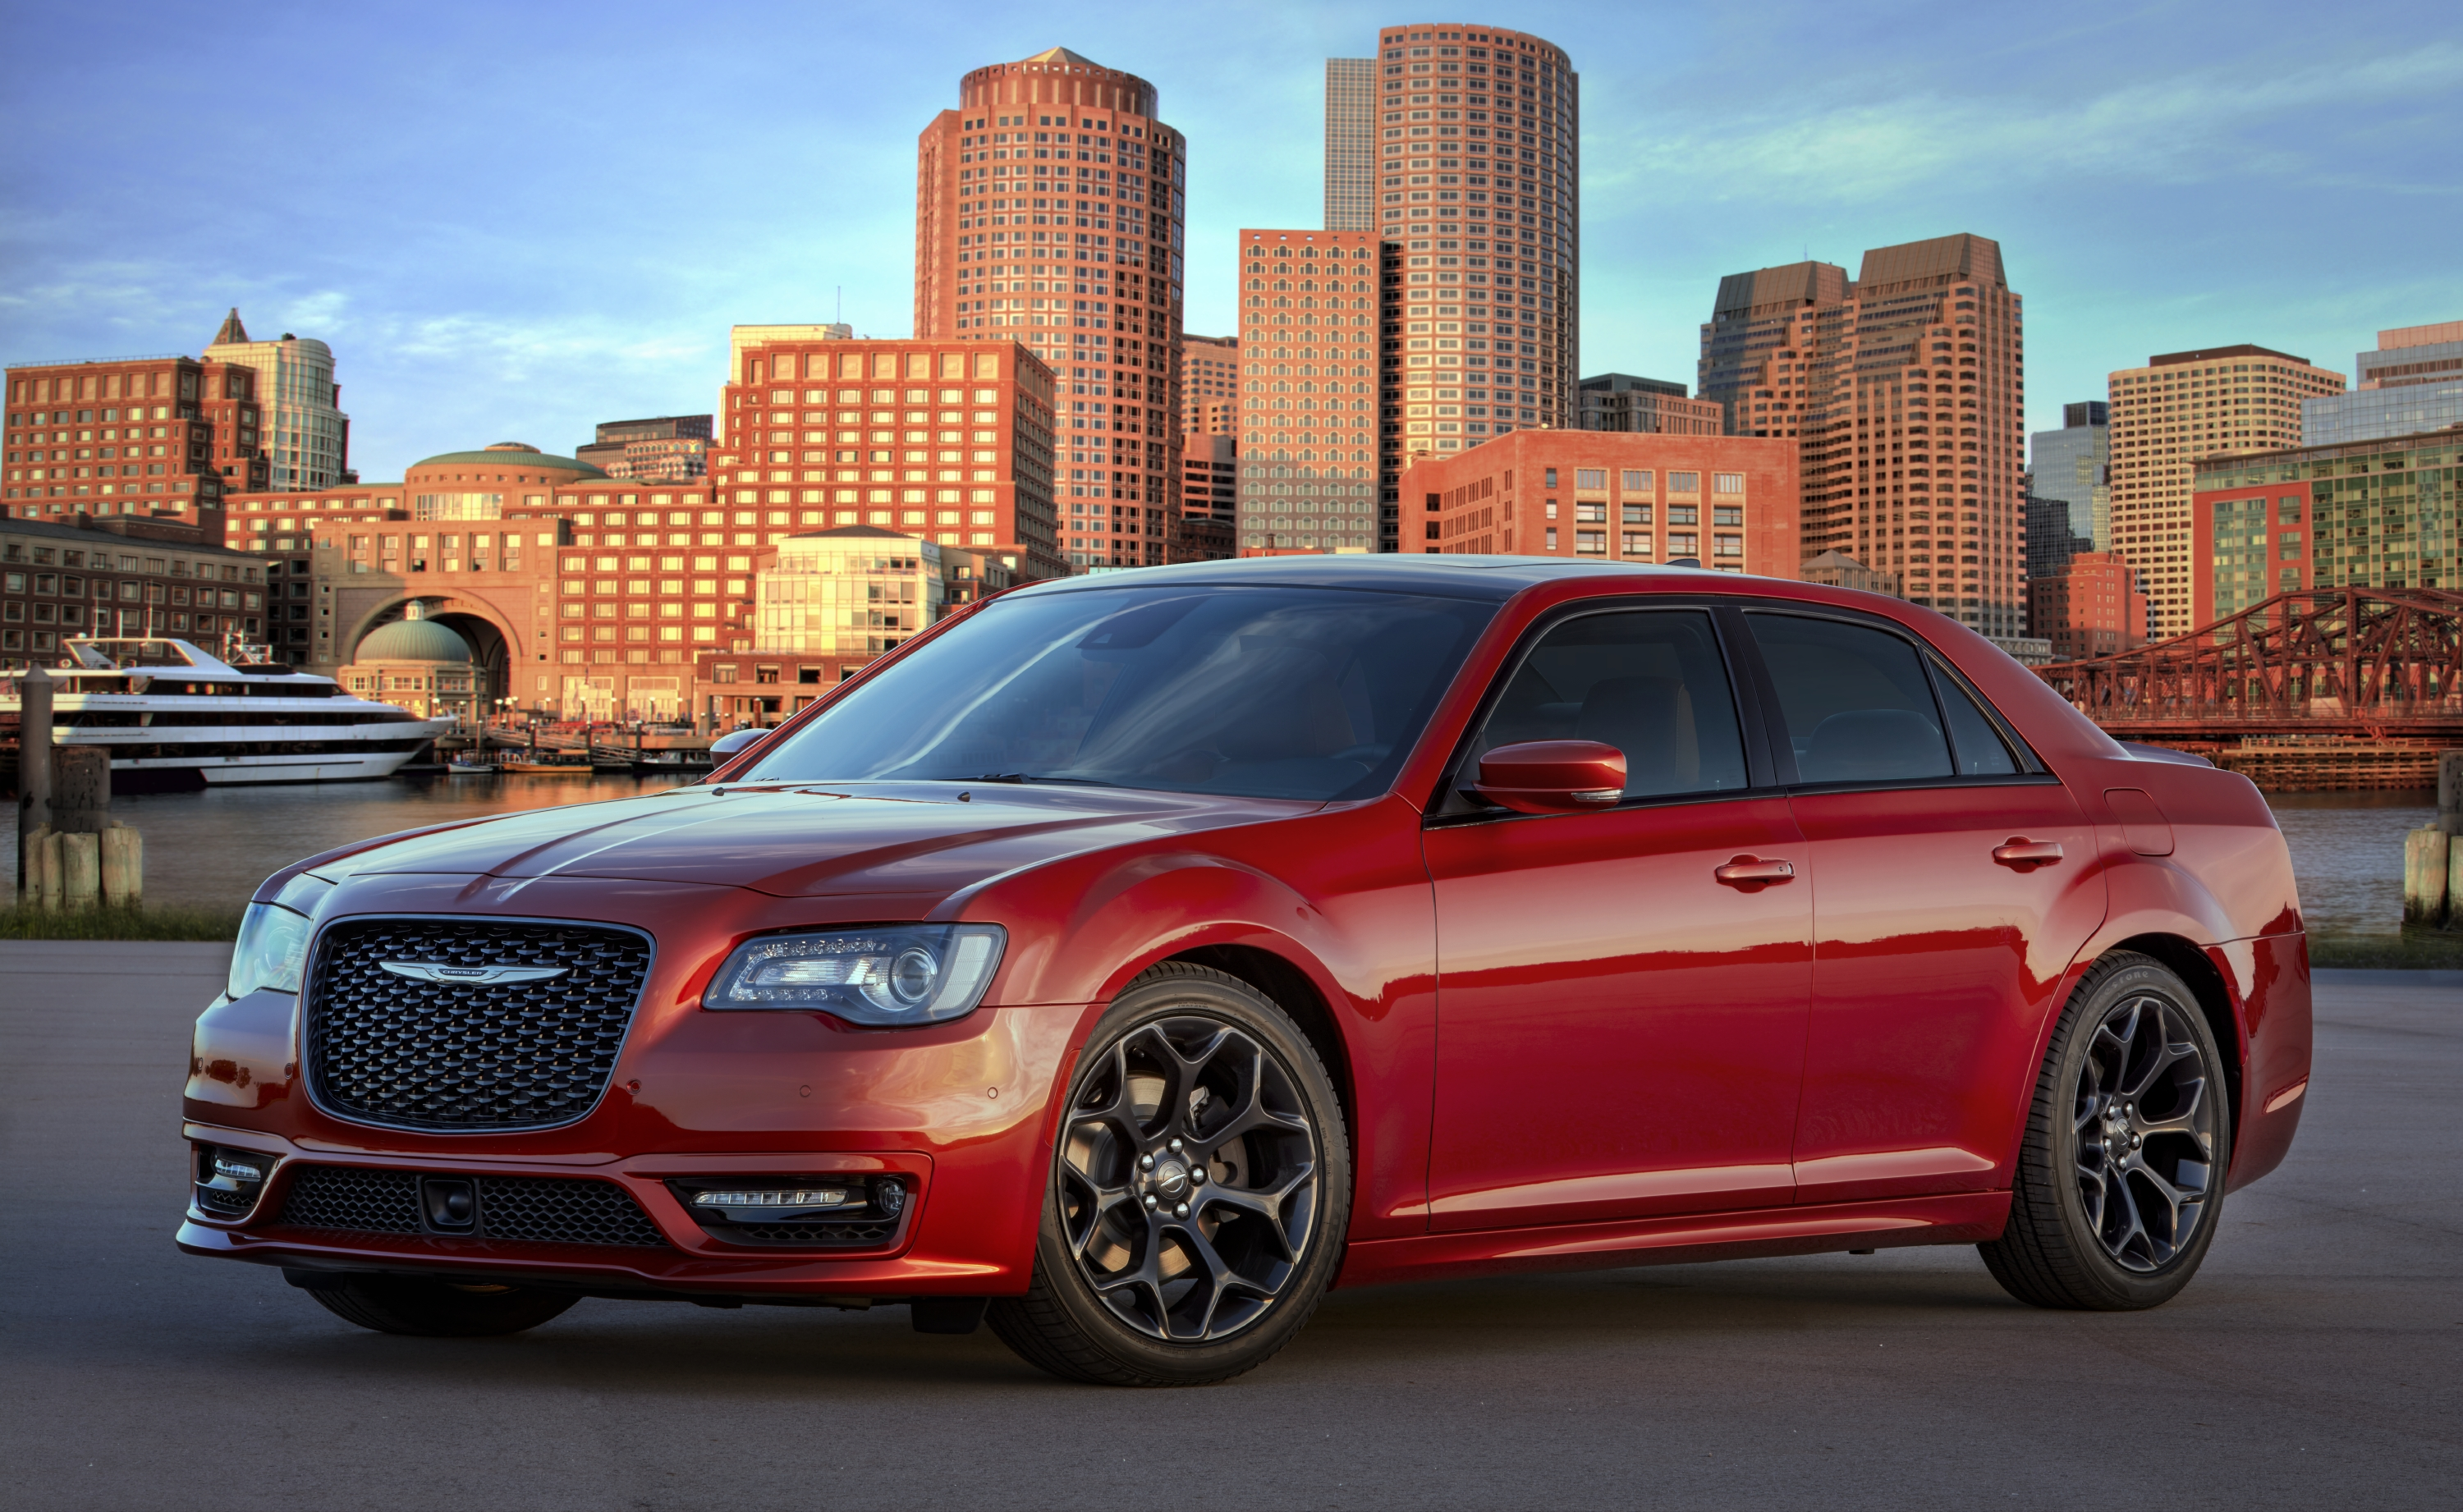 2020 chrysler 300 gets new colors a new package and new prices autoblog autoblog